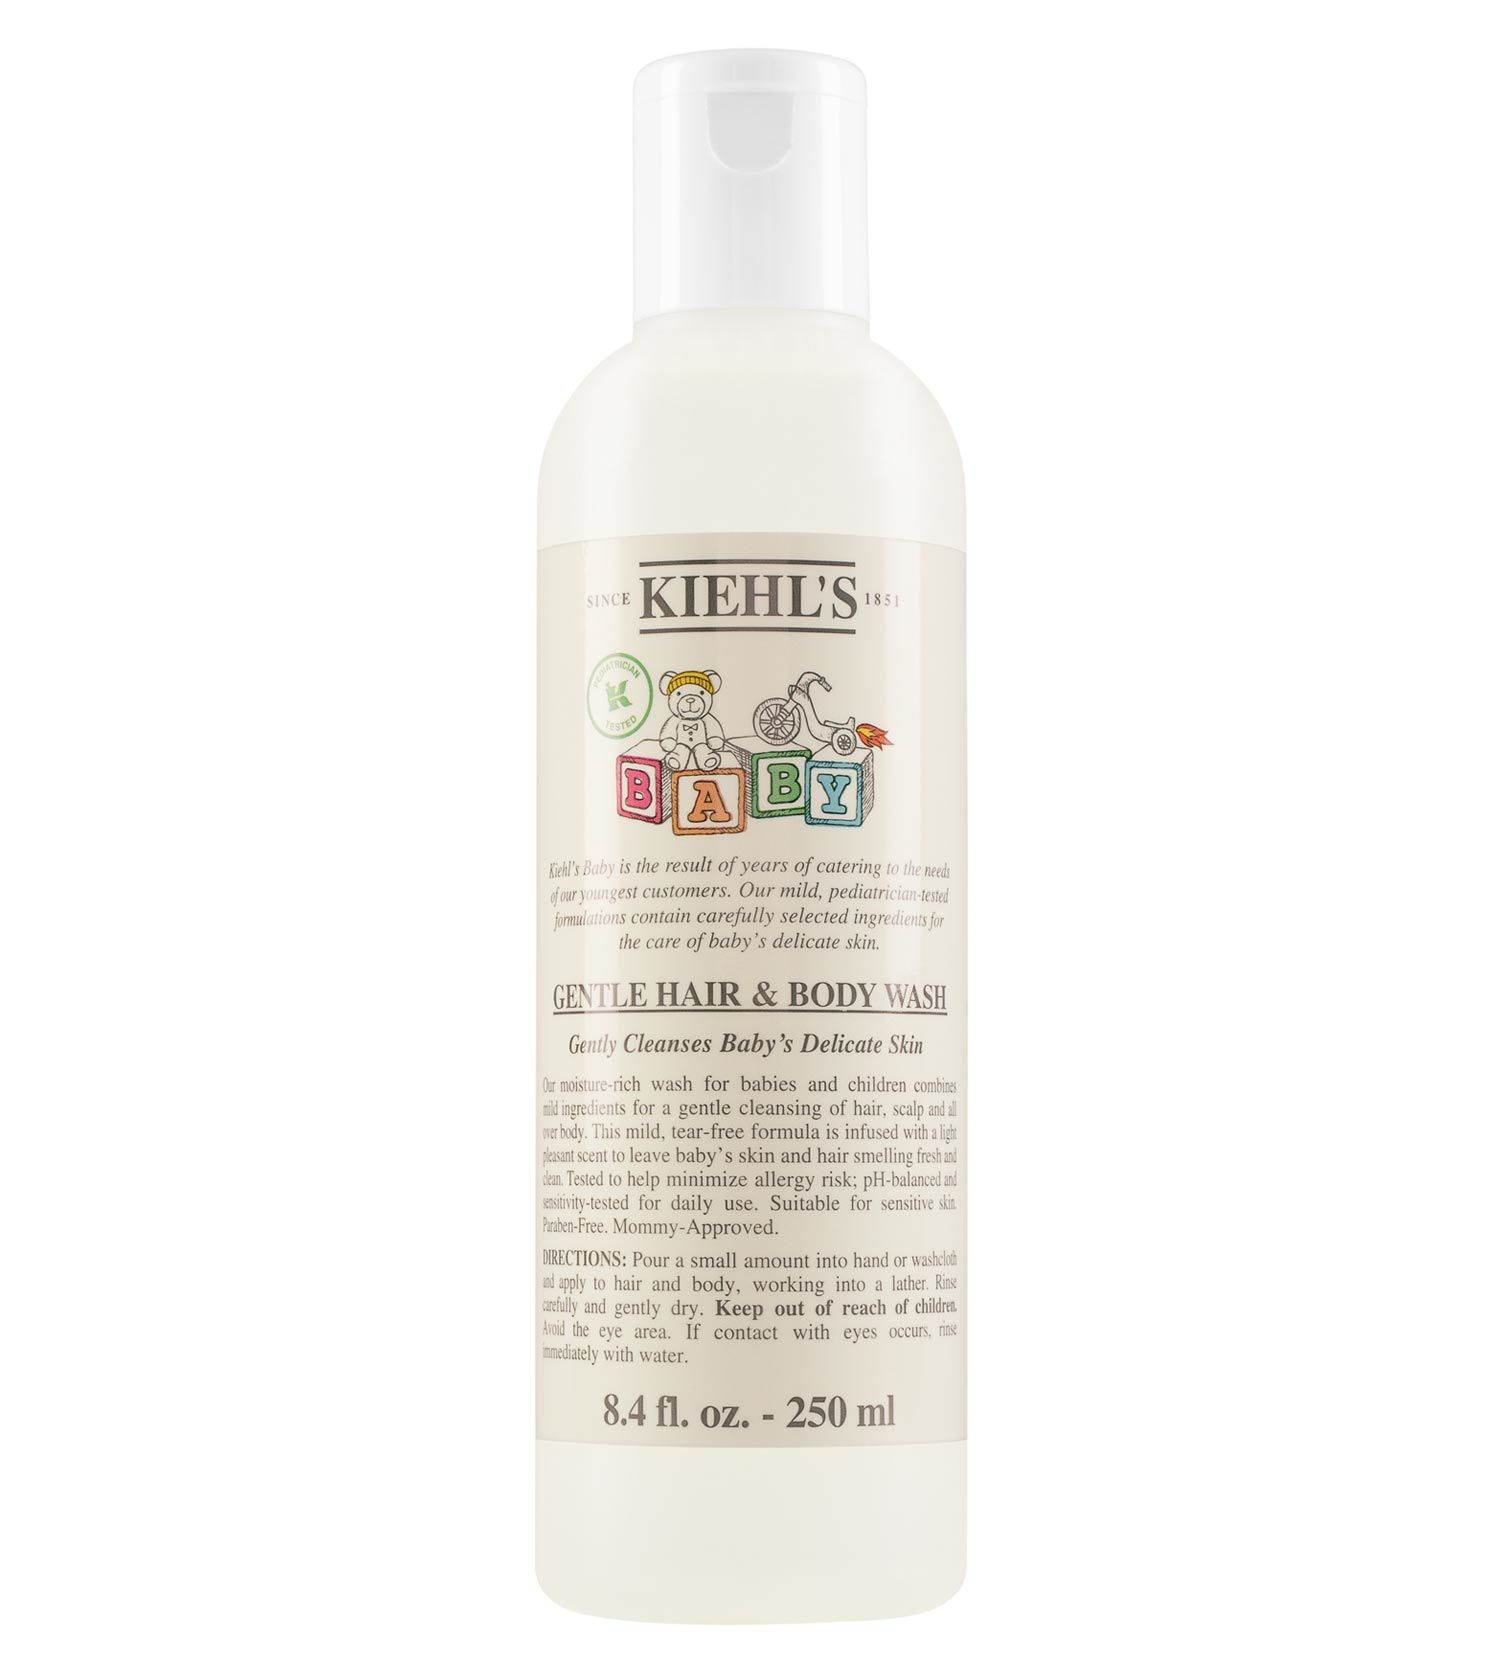 Kiehls Gentle Hair and Body Wash